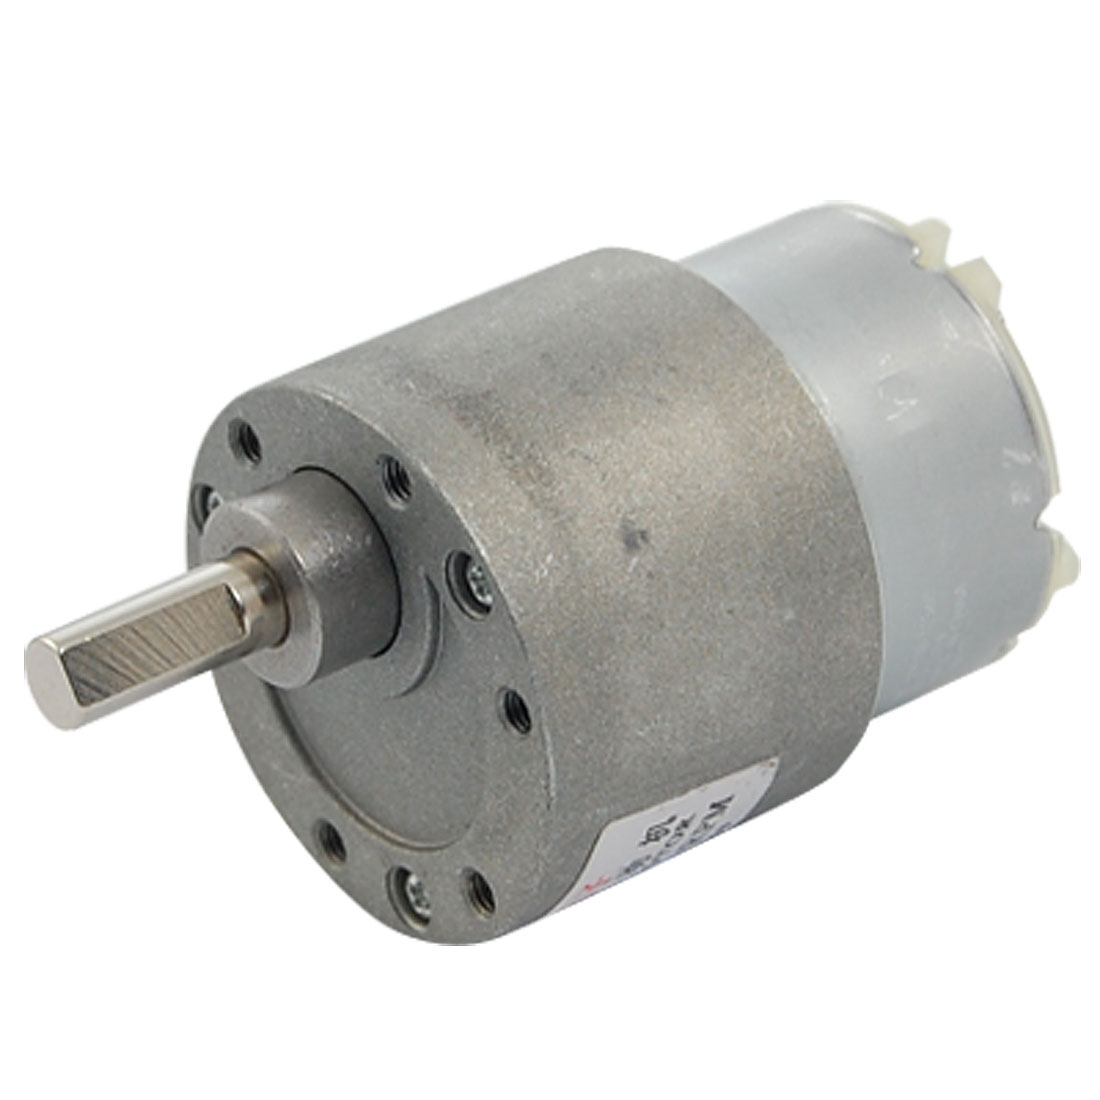 12V DC 0.07A 20RPM Torque Gear Box Electric Motor 37mm